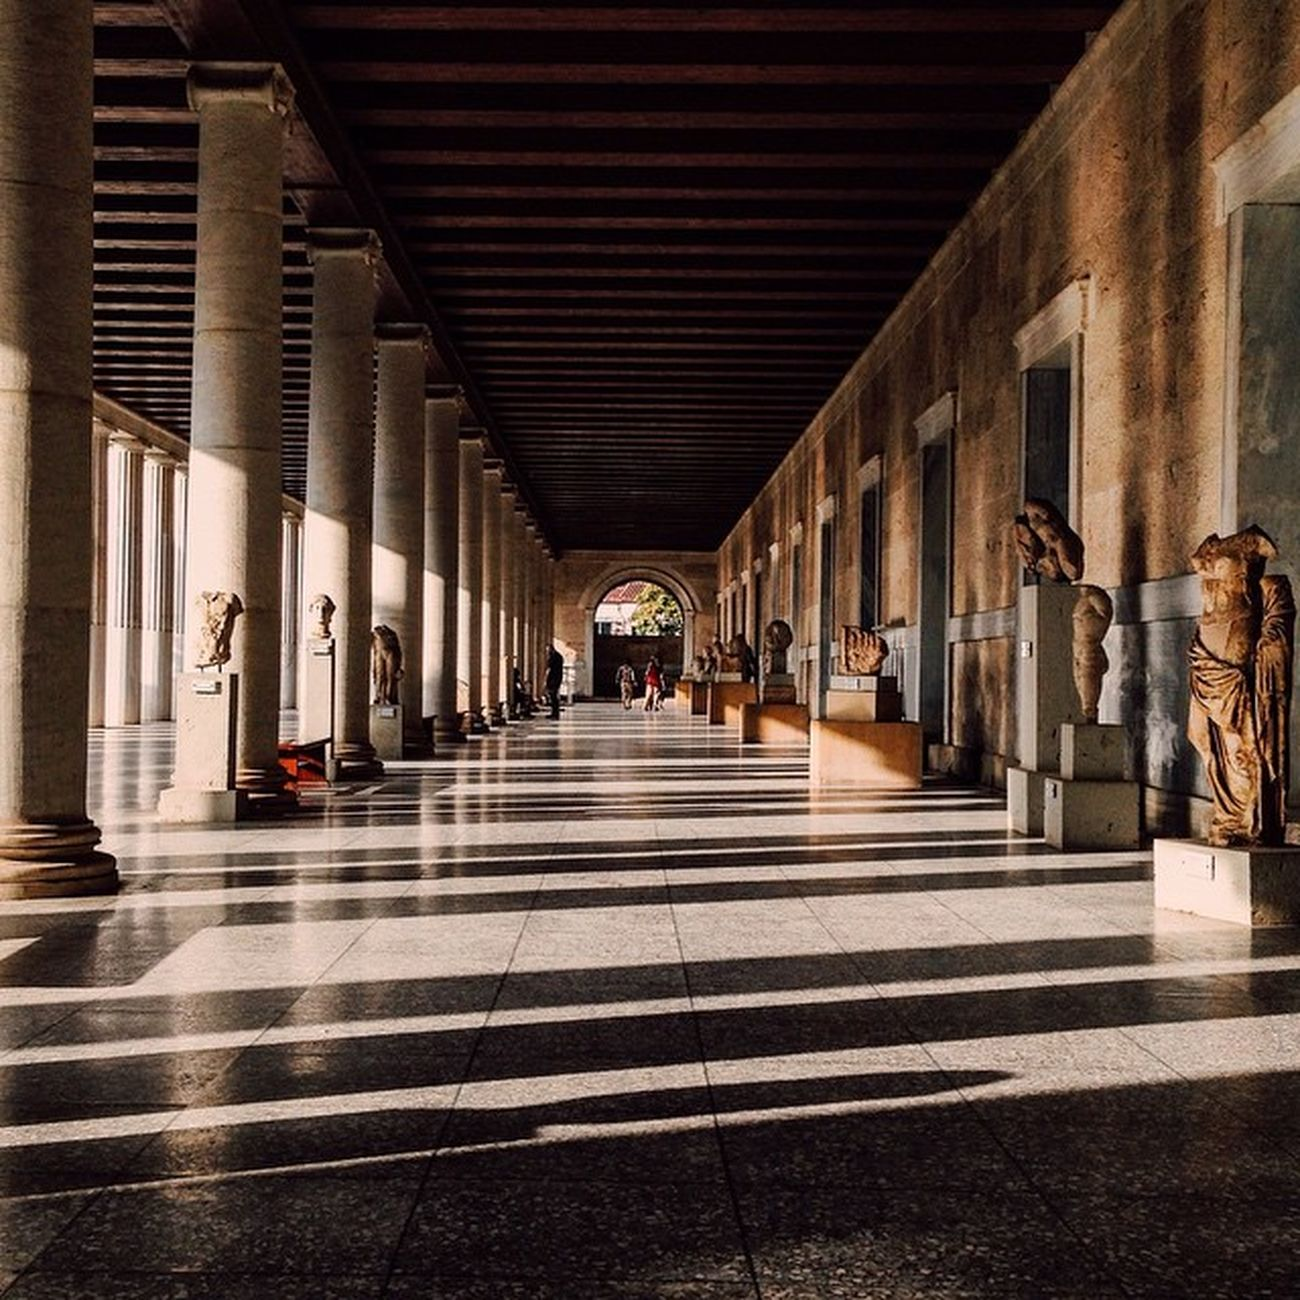 Ancient Agora in Athens . The place where our civilization began. Mathematics, logic, law - it all started there. Mobilnytydzien7 Mobilnytydzien Grupamobilni VSCO Vscocam Vscogreece Igersgreece